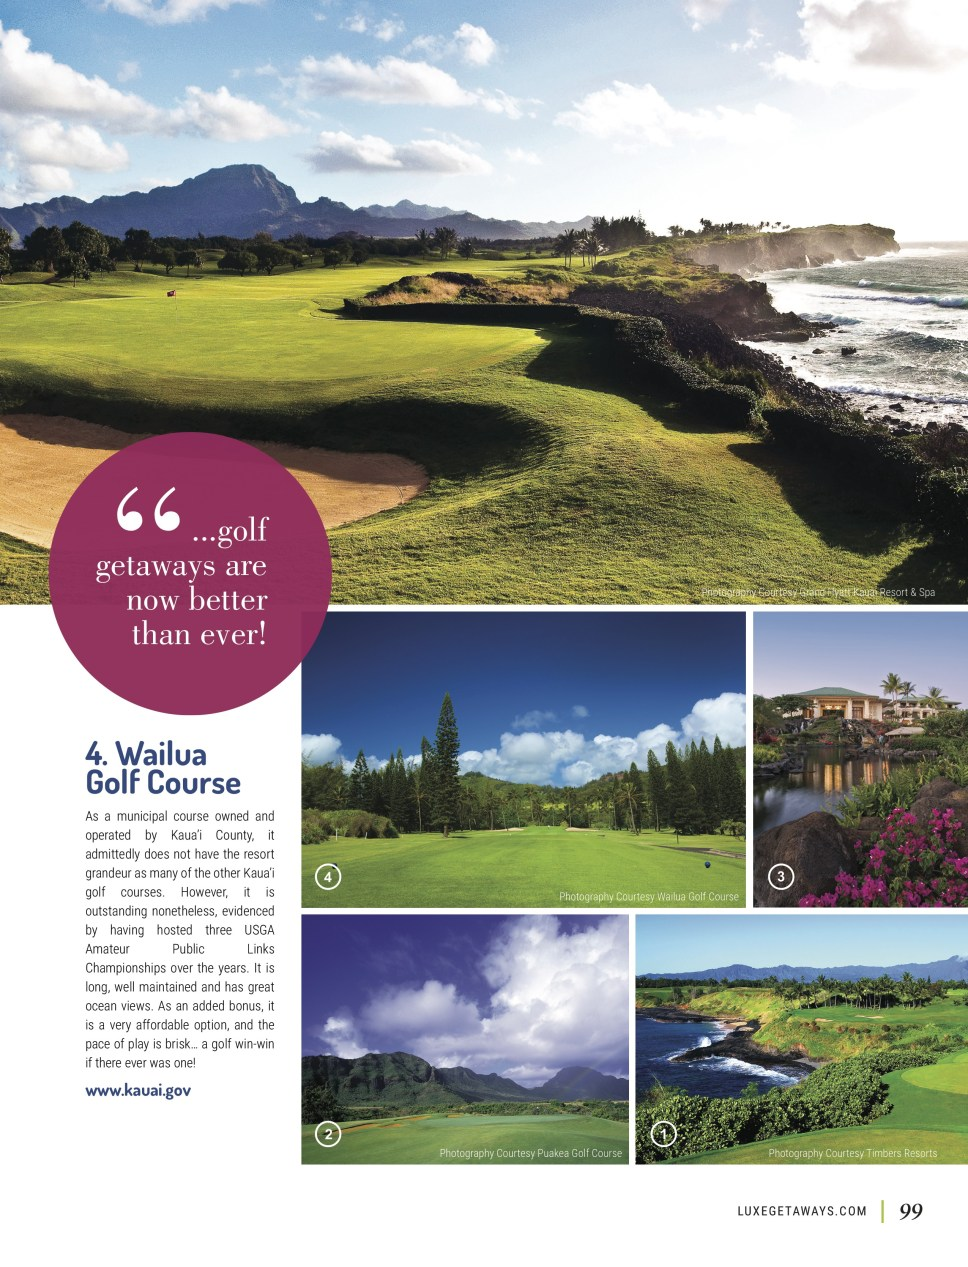 luxegetaways_fall2016_hawaii-golf_2